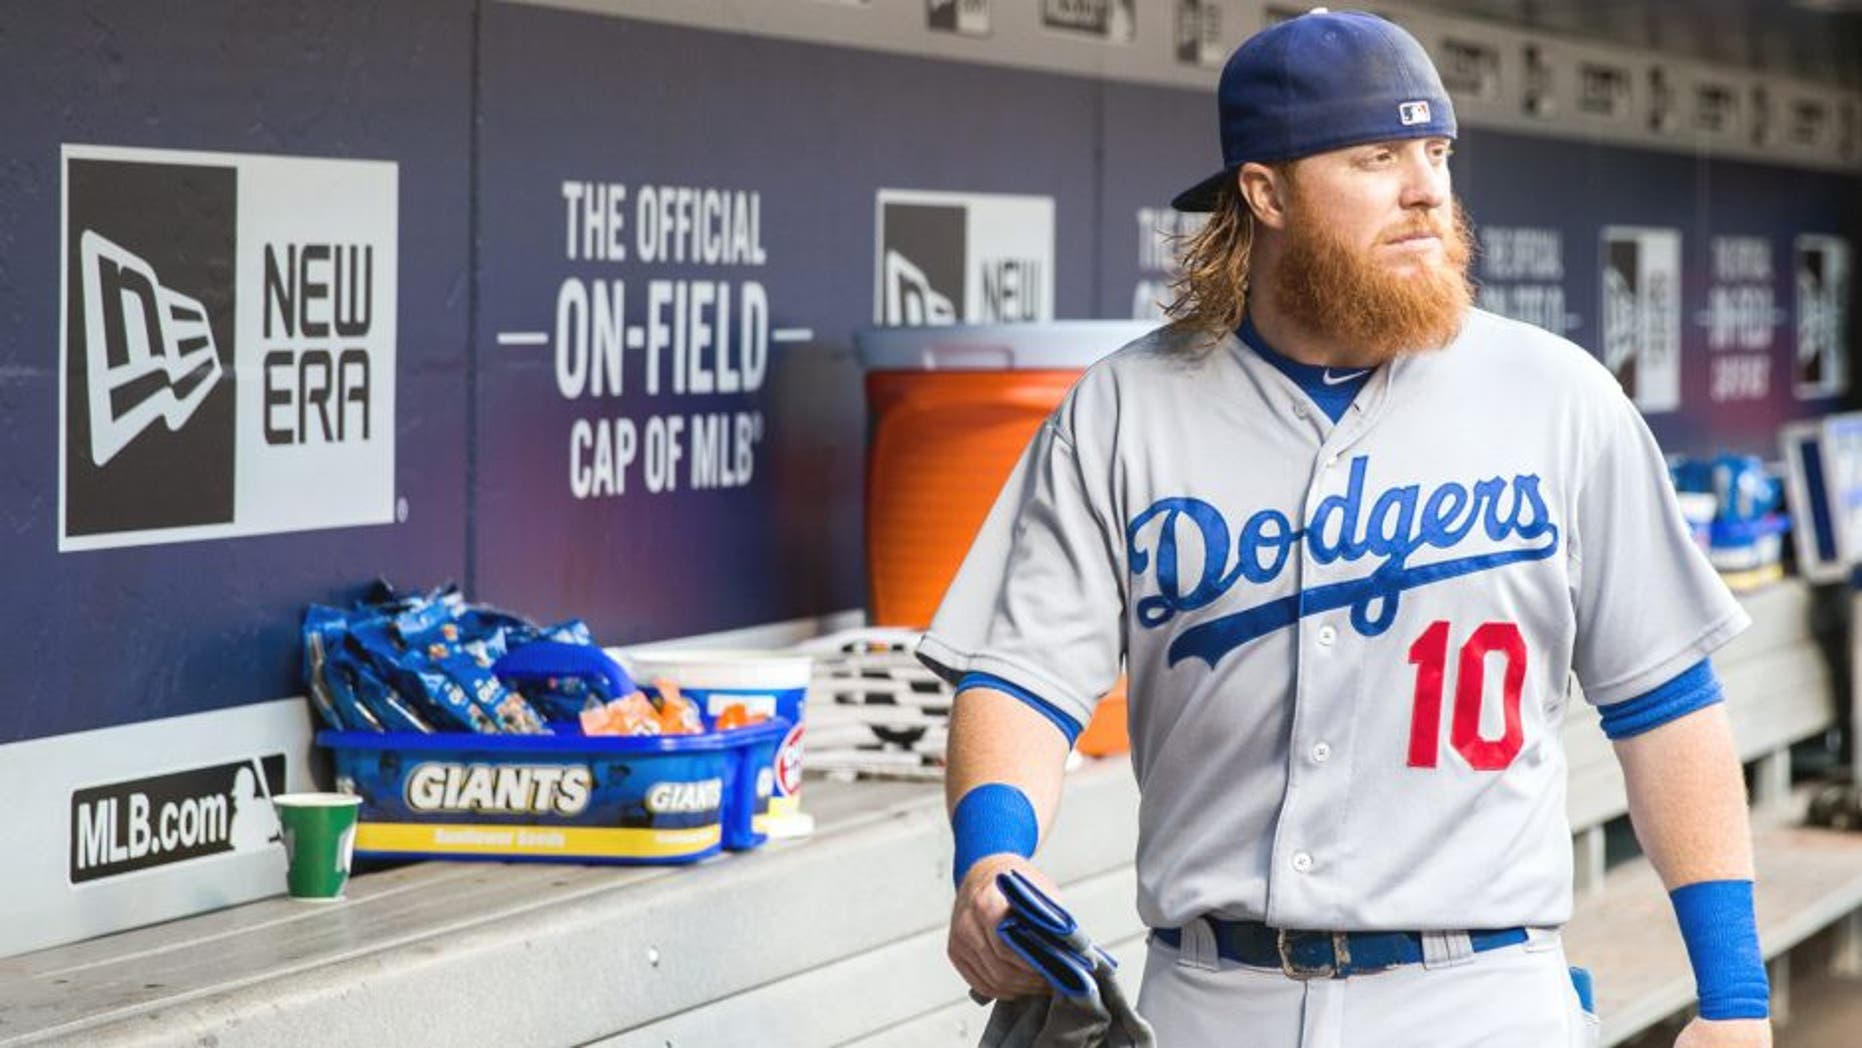 NEW YORK - JULY 24: Justin Turner #10 of the Los Angeles Dodgers looks on before the game against the New York Mets at Citi Field on July 24, 2015 in the Queens borough of New York City. (Photo by Rob Tringali/SportsChrome/Getty Images)